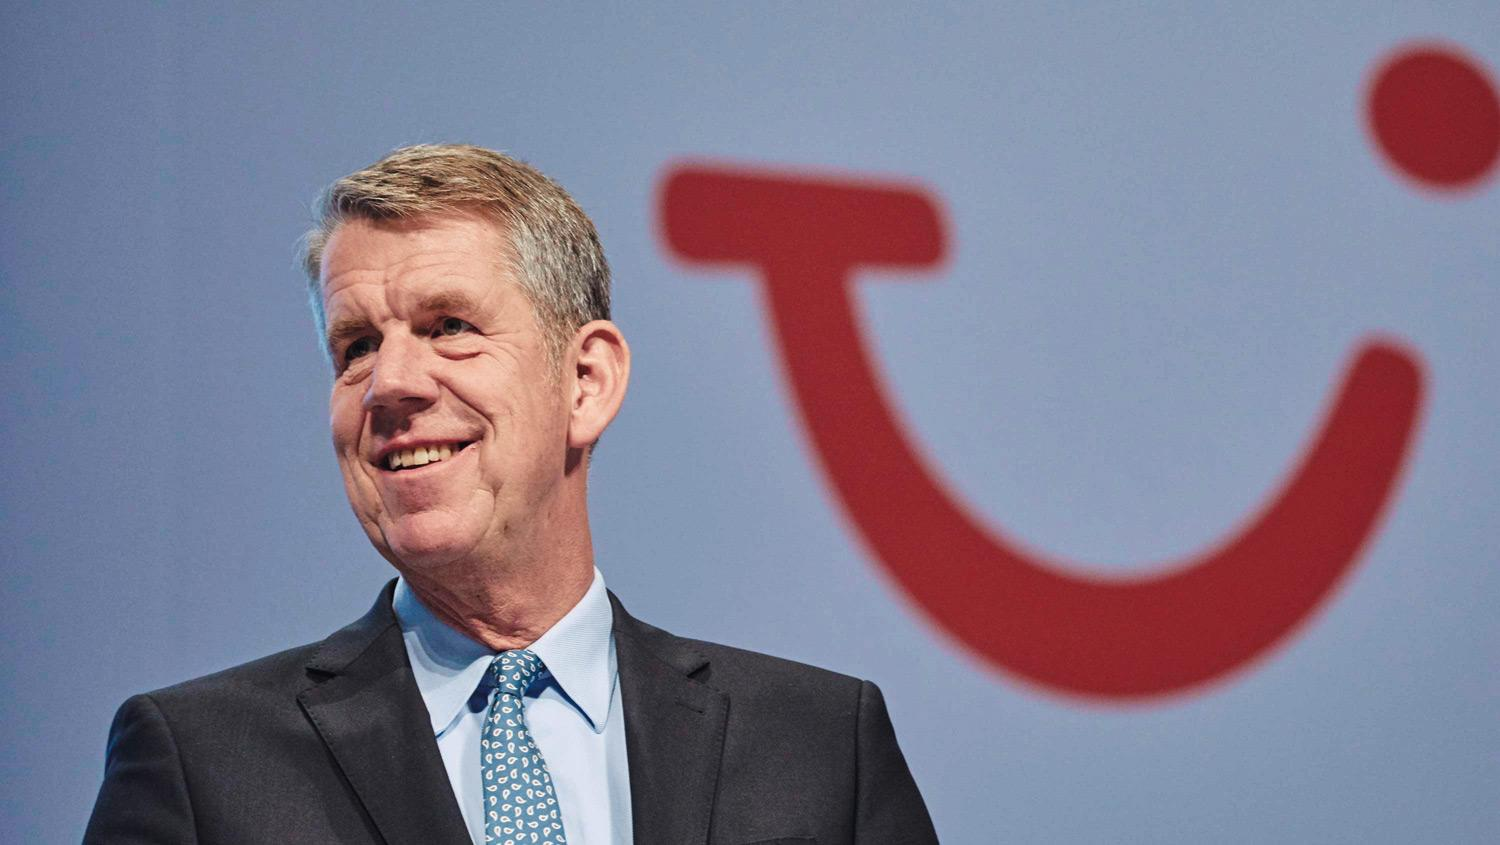 """We have successfully restarted our operations"": CEO Fritz Joussen remains positive about TUI Group's recent performance."